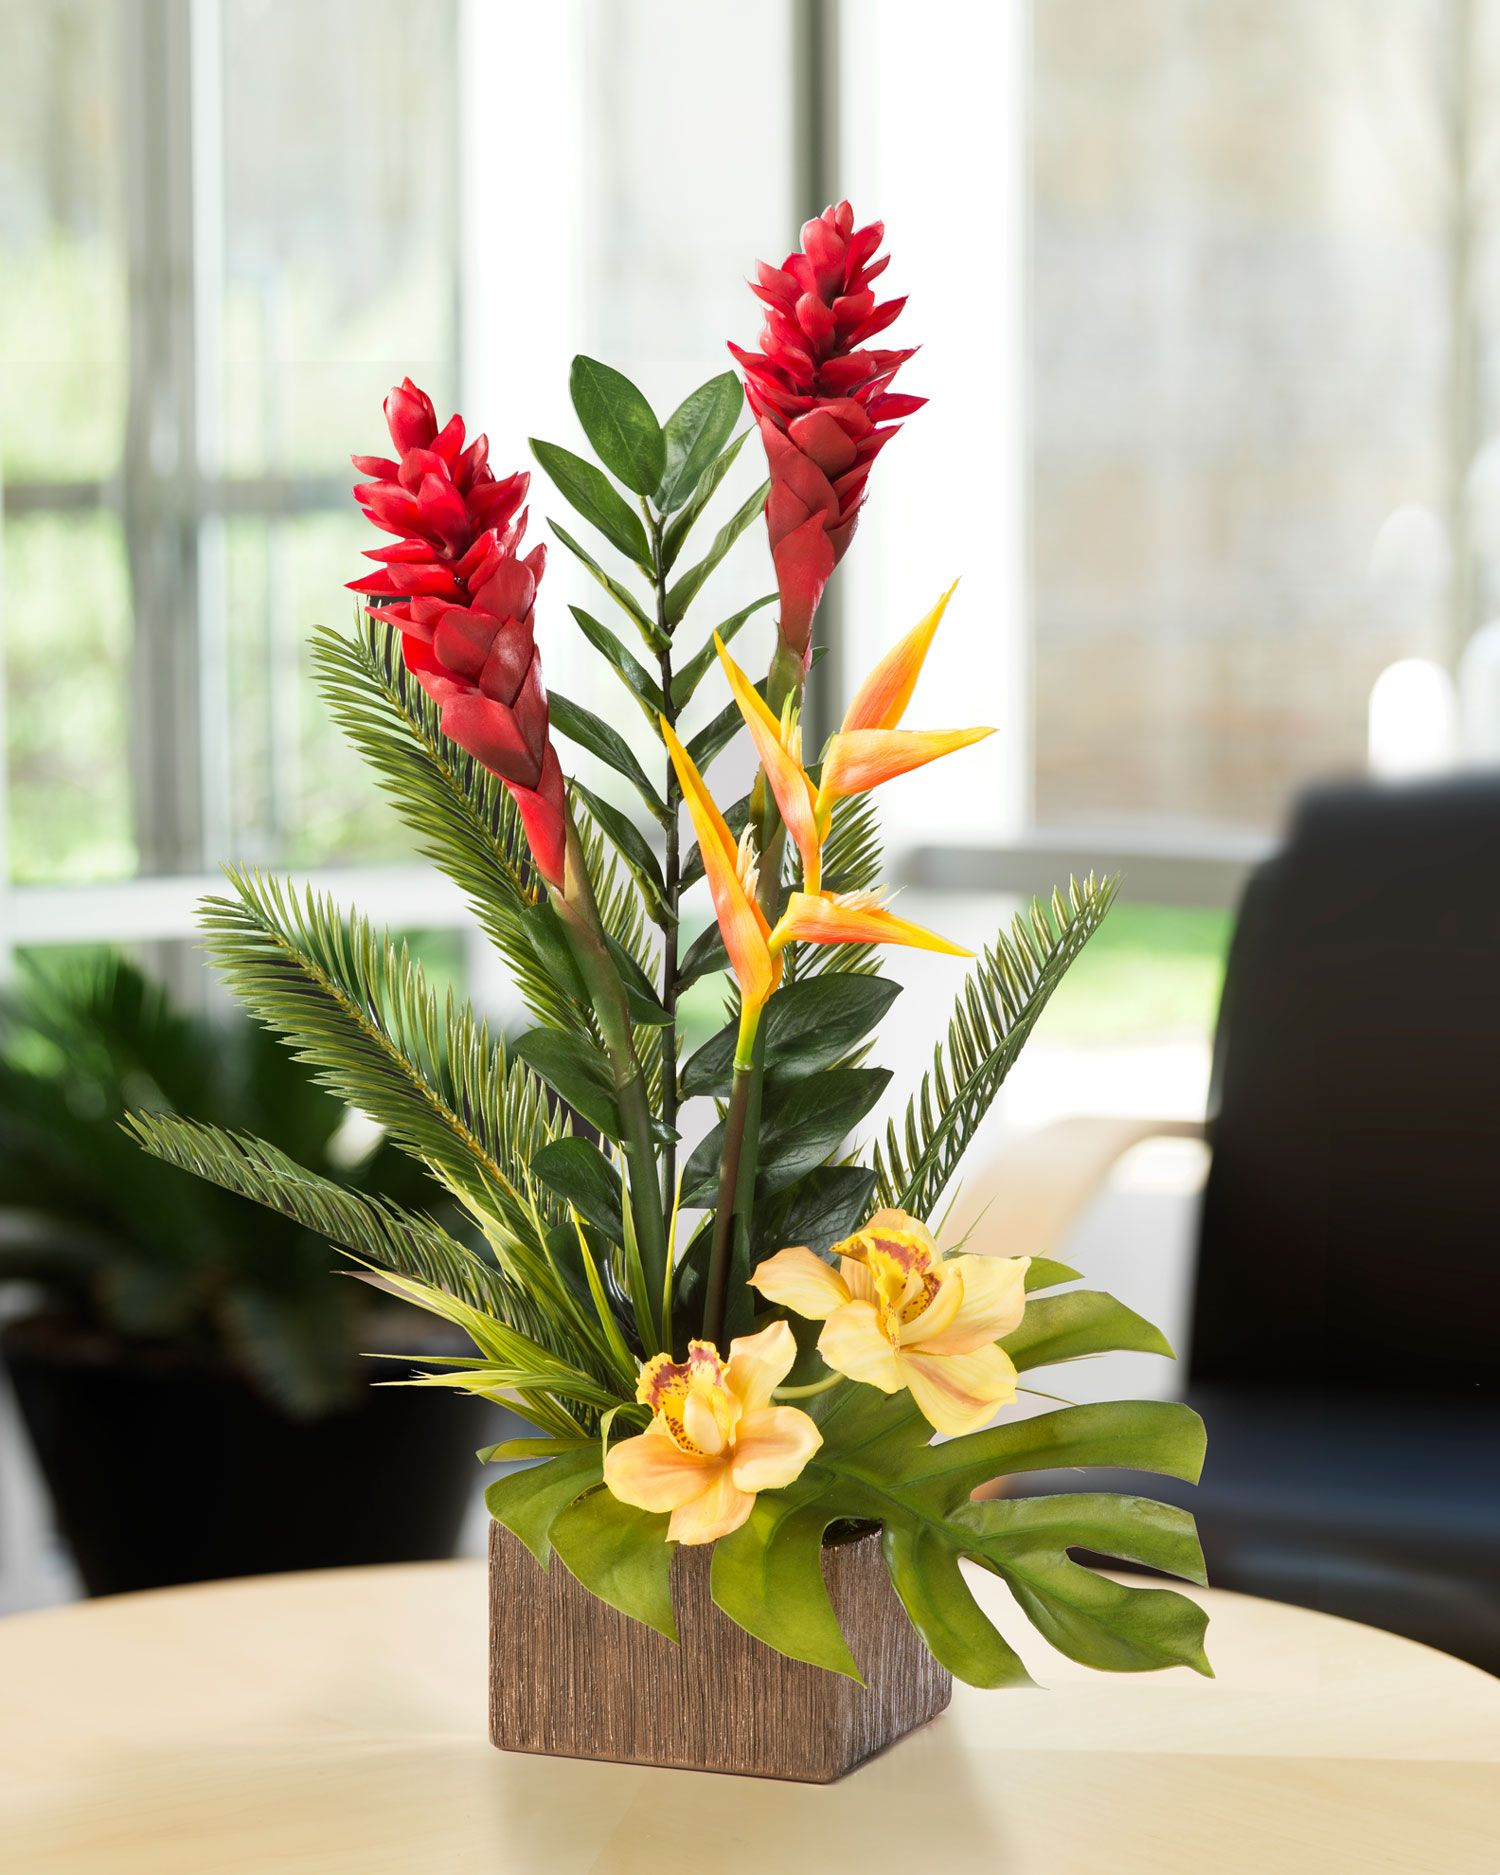 Capture The Botanical Beauty Of Islands For Your Home And Office With Our Torch Ginger Orchid Artificial Tropical Flower Arrangement At Petals